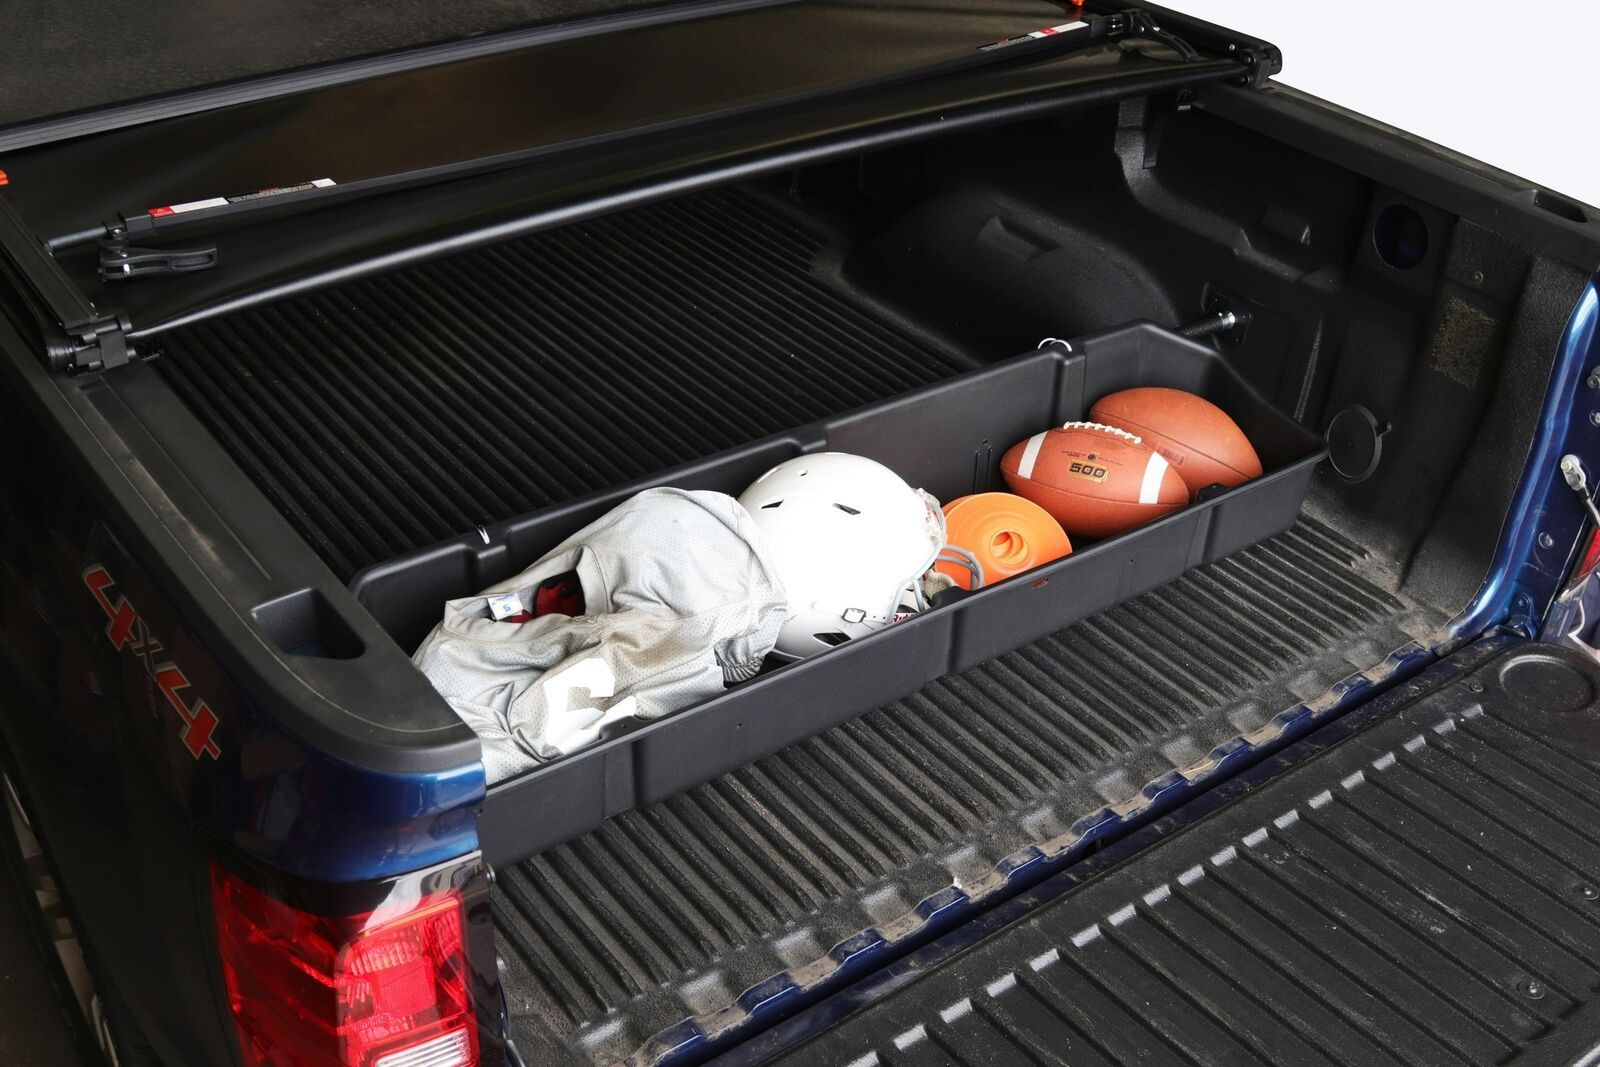 2019 Silverado 1500 Side Mounted Bed Storage Box Package